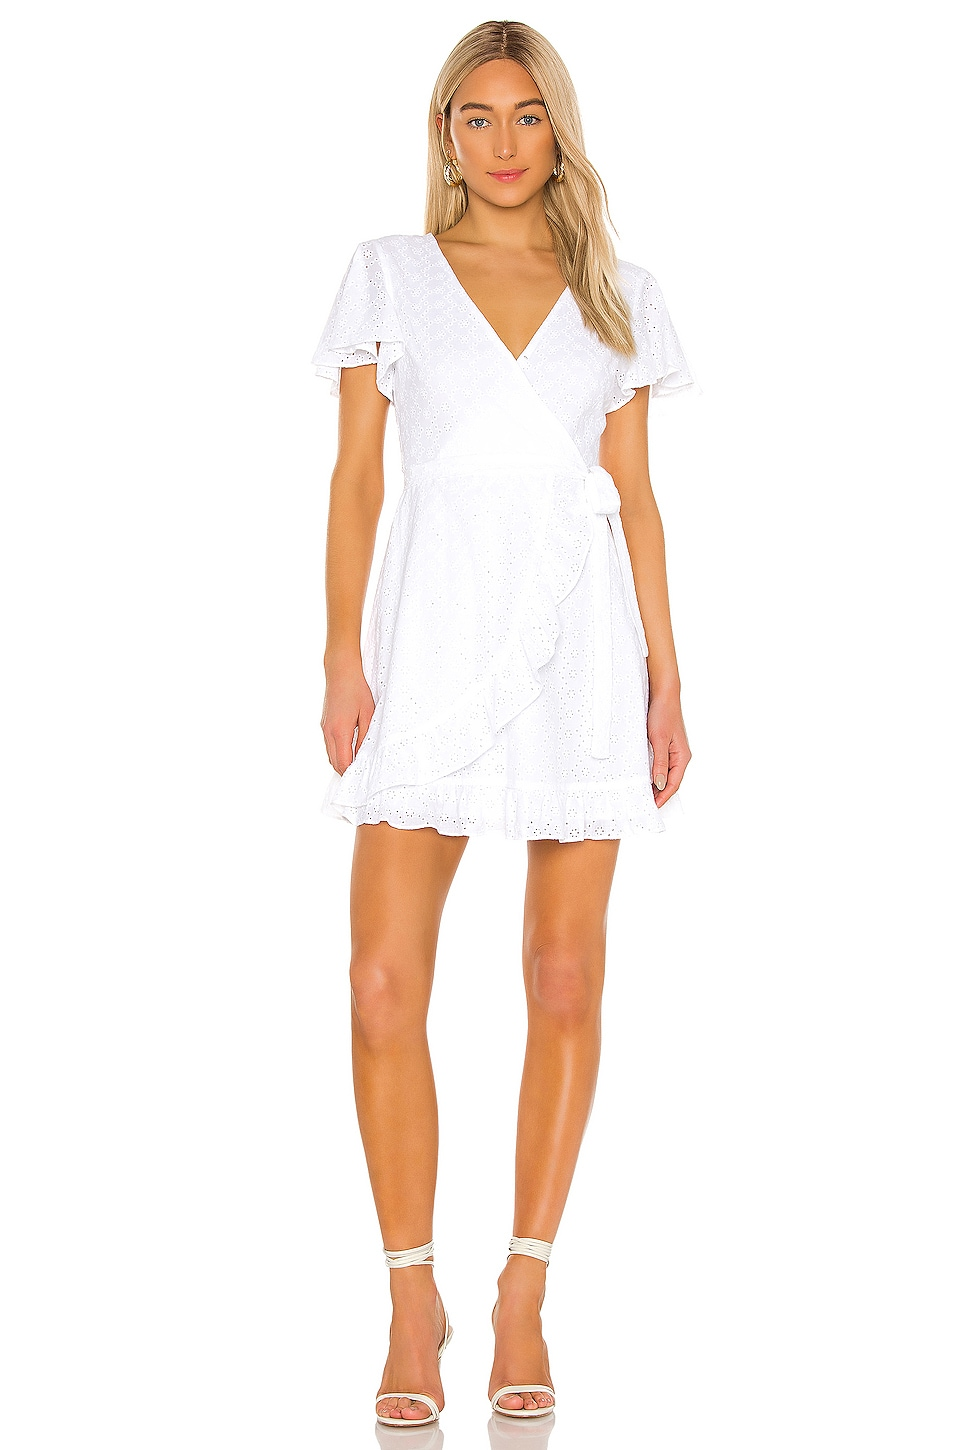 JACK by BB Dakota Easy On The Eyelet Wrap Dress             BB Dakota                                                                                                       CA$ 122.67 14